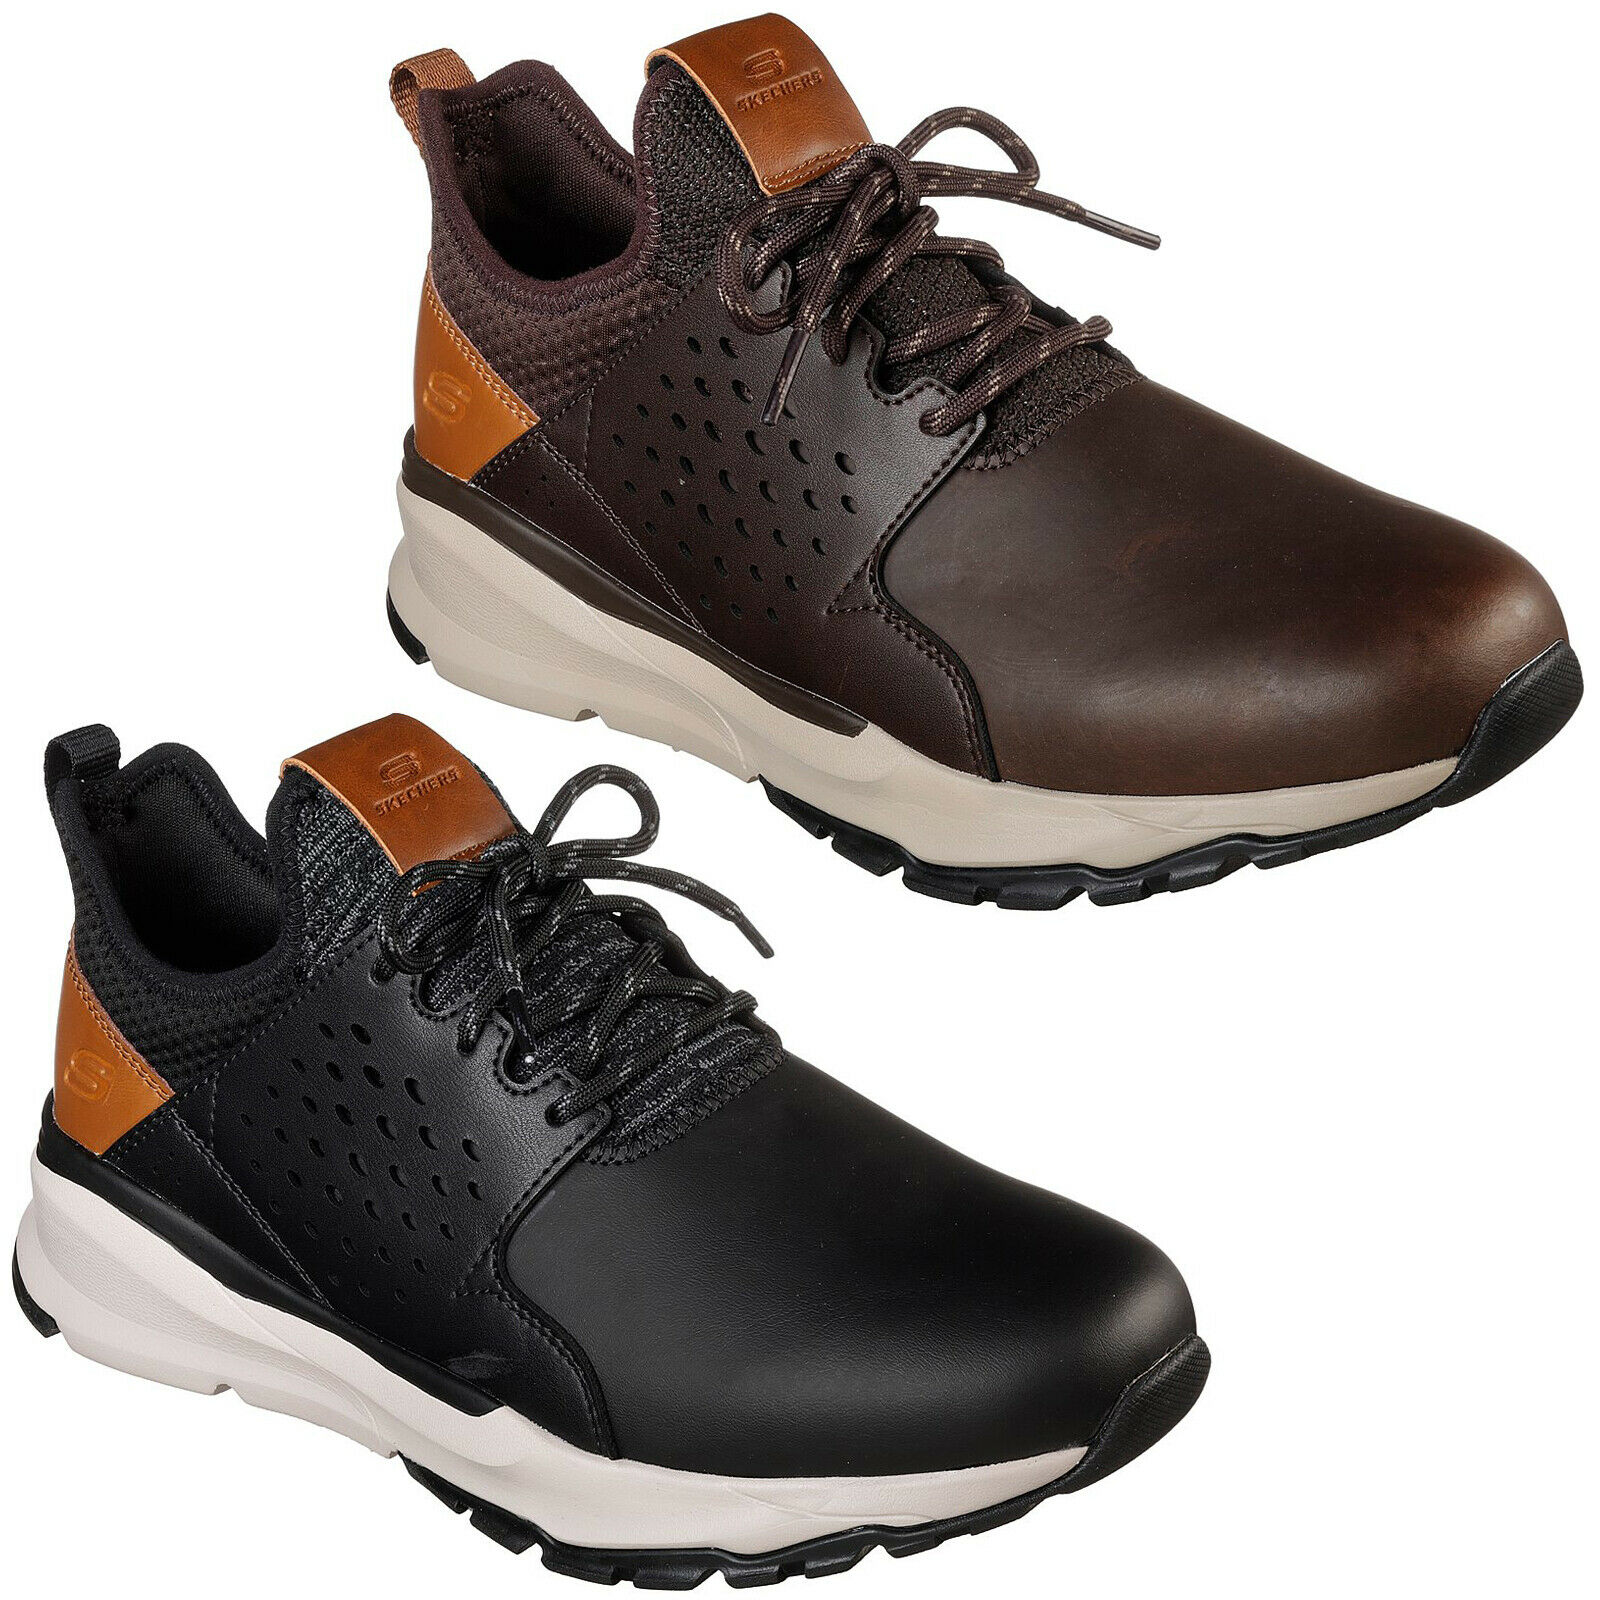 Skechers Relven - Hemson Trainers 65732 Mens Leather Lace Up Sporty Casual schuhe